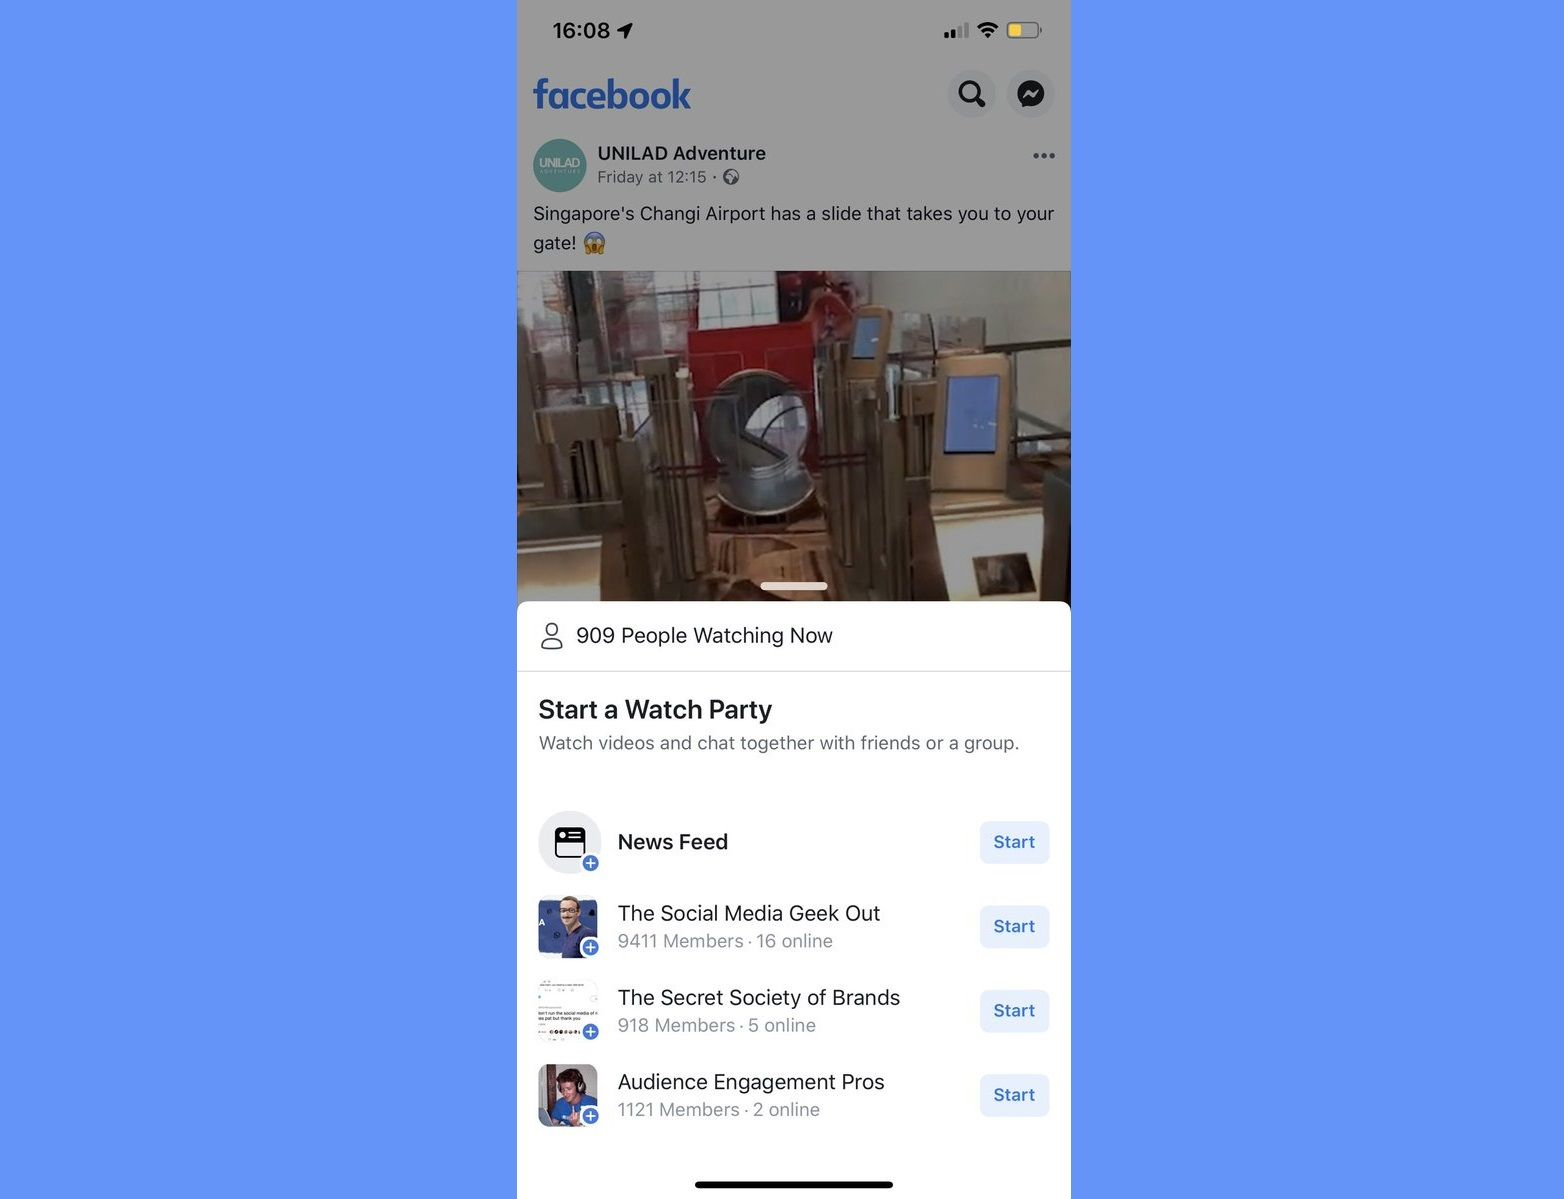 Facebook Is Using News Feed Videos To Promote Watch Parties Social Media Watch Party Network Marketing